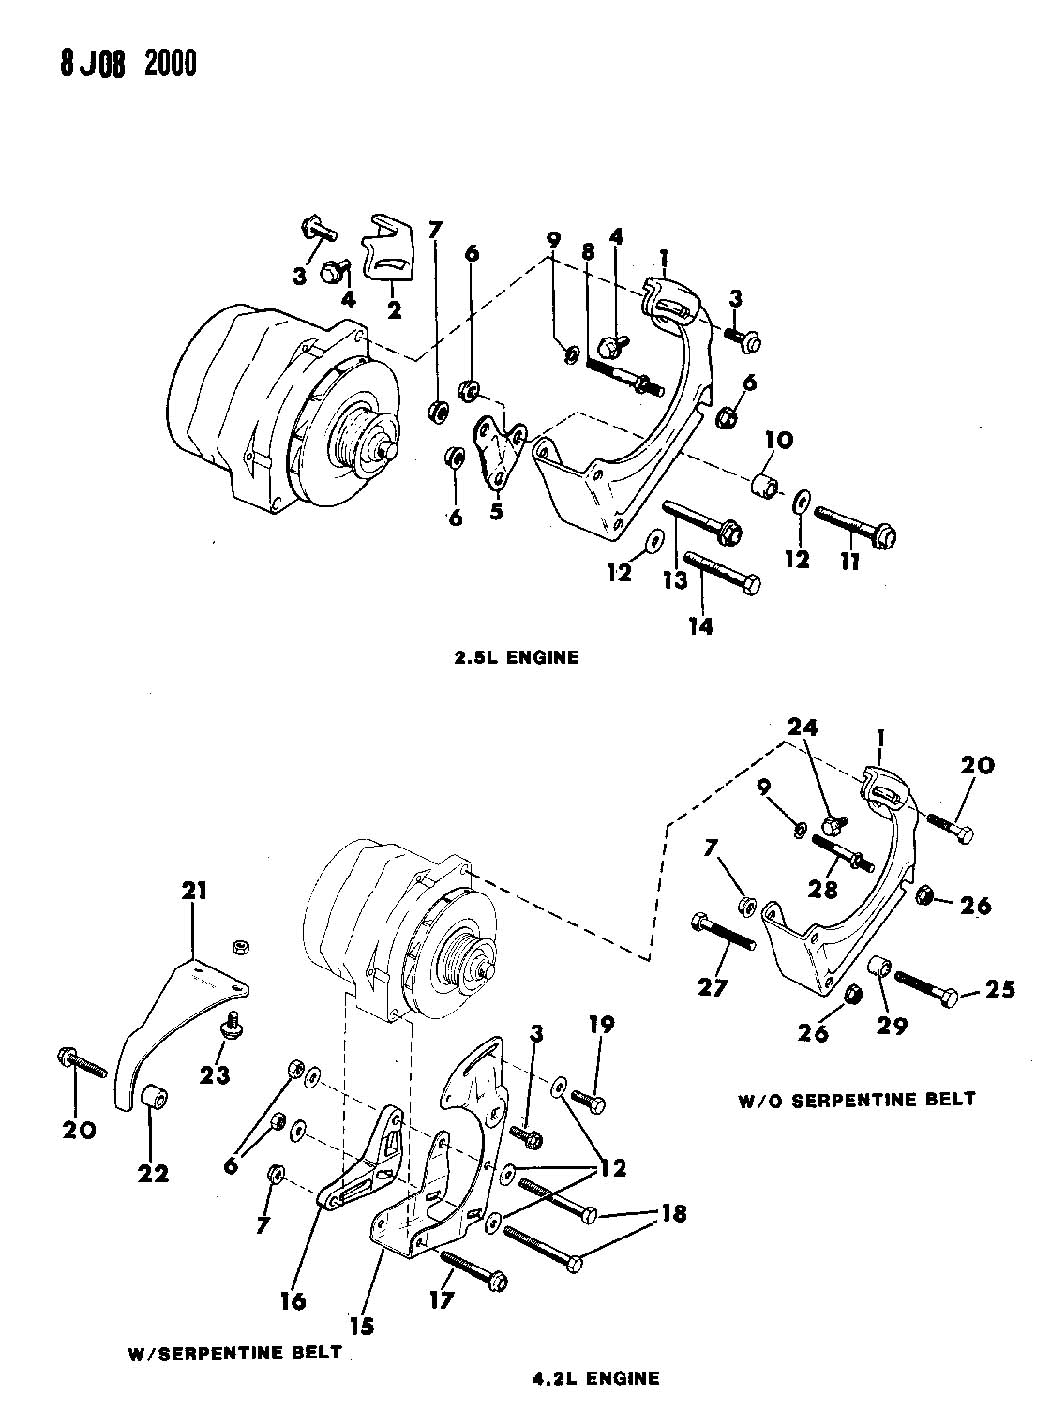 1988 jeep wrangler alternator wiring diagram